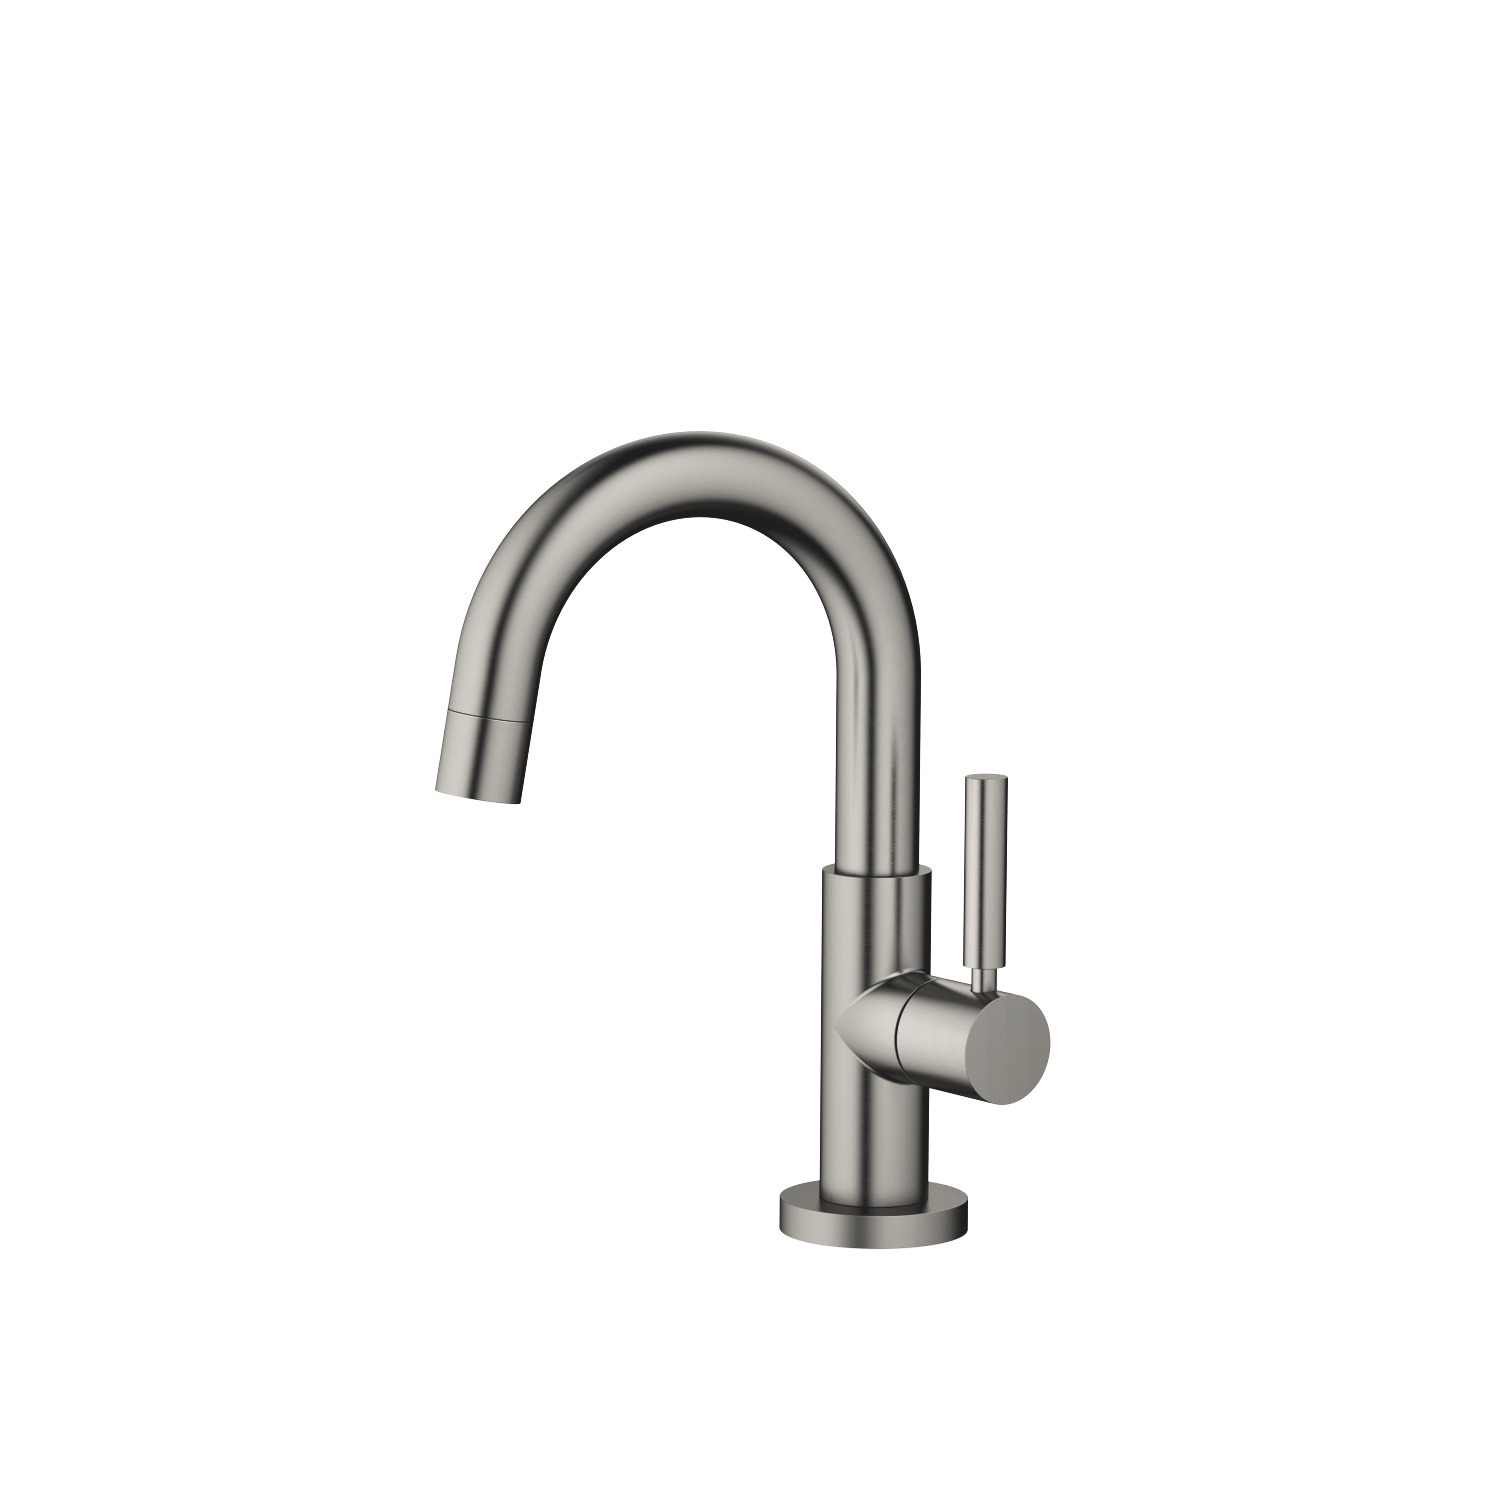 Pillar tap cold water - Dark Platinum matt - 17 510 882-99